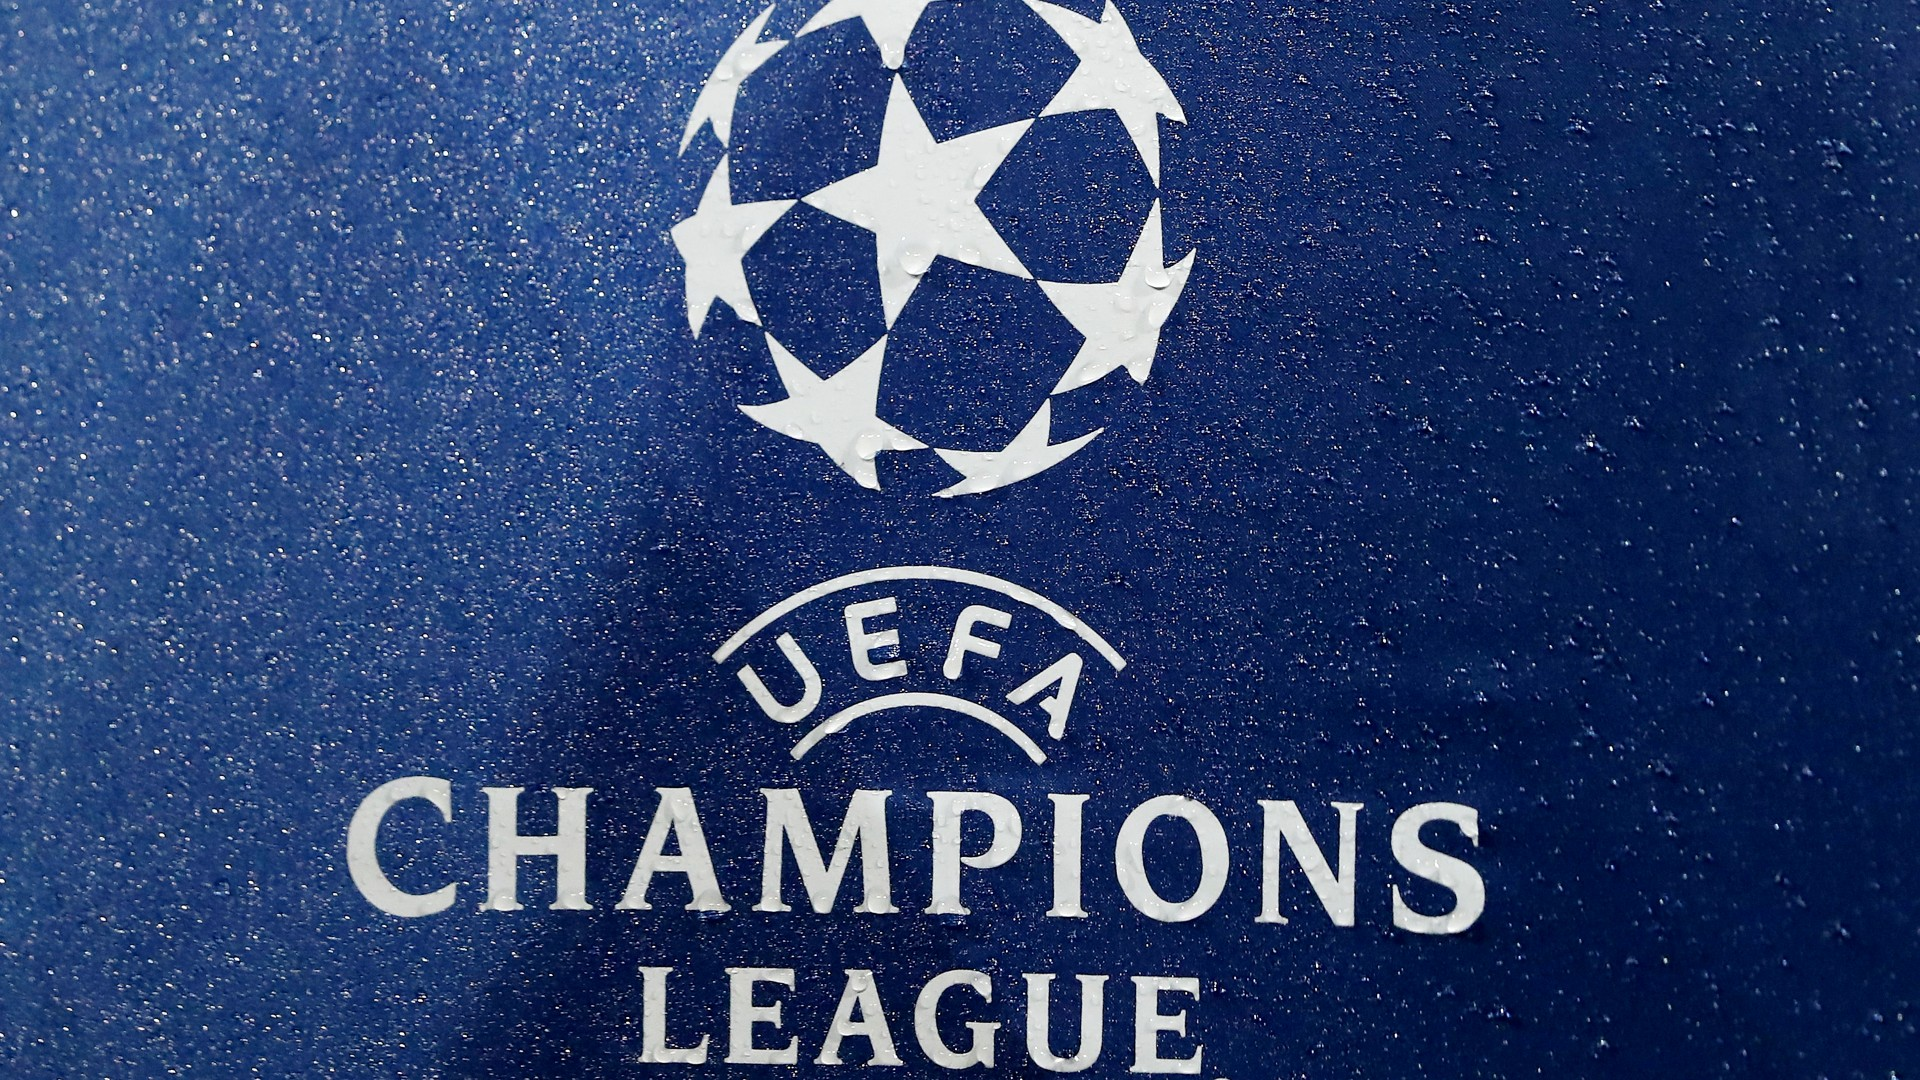 UEFA Champions League group standings & results: Updated tables and match schedule